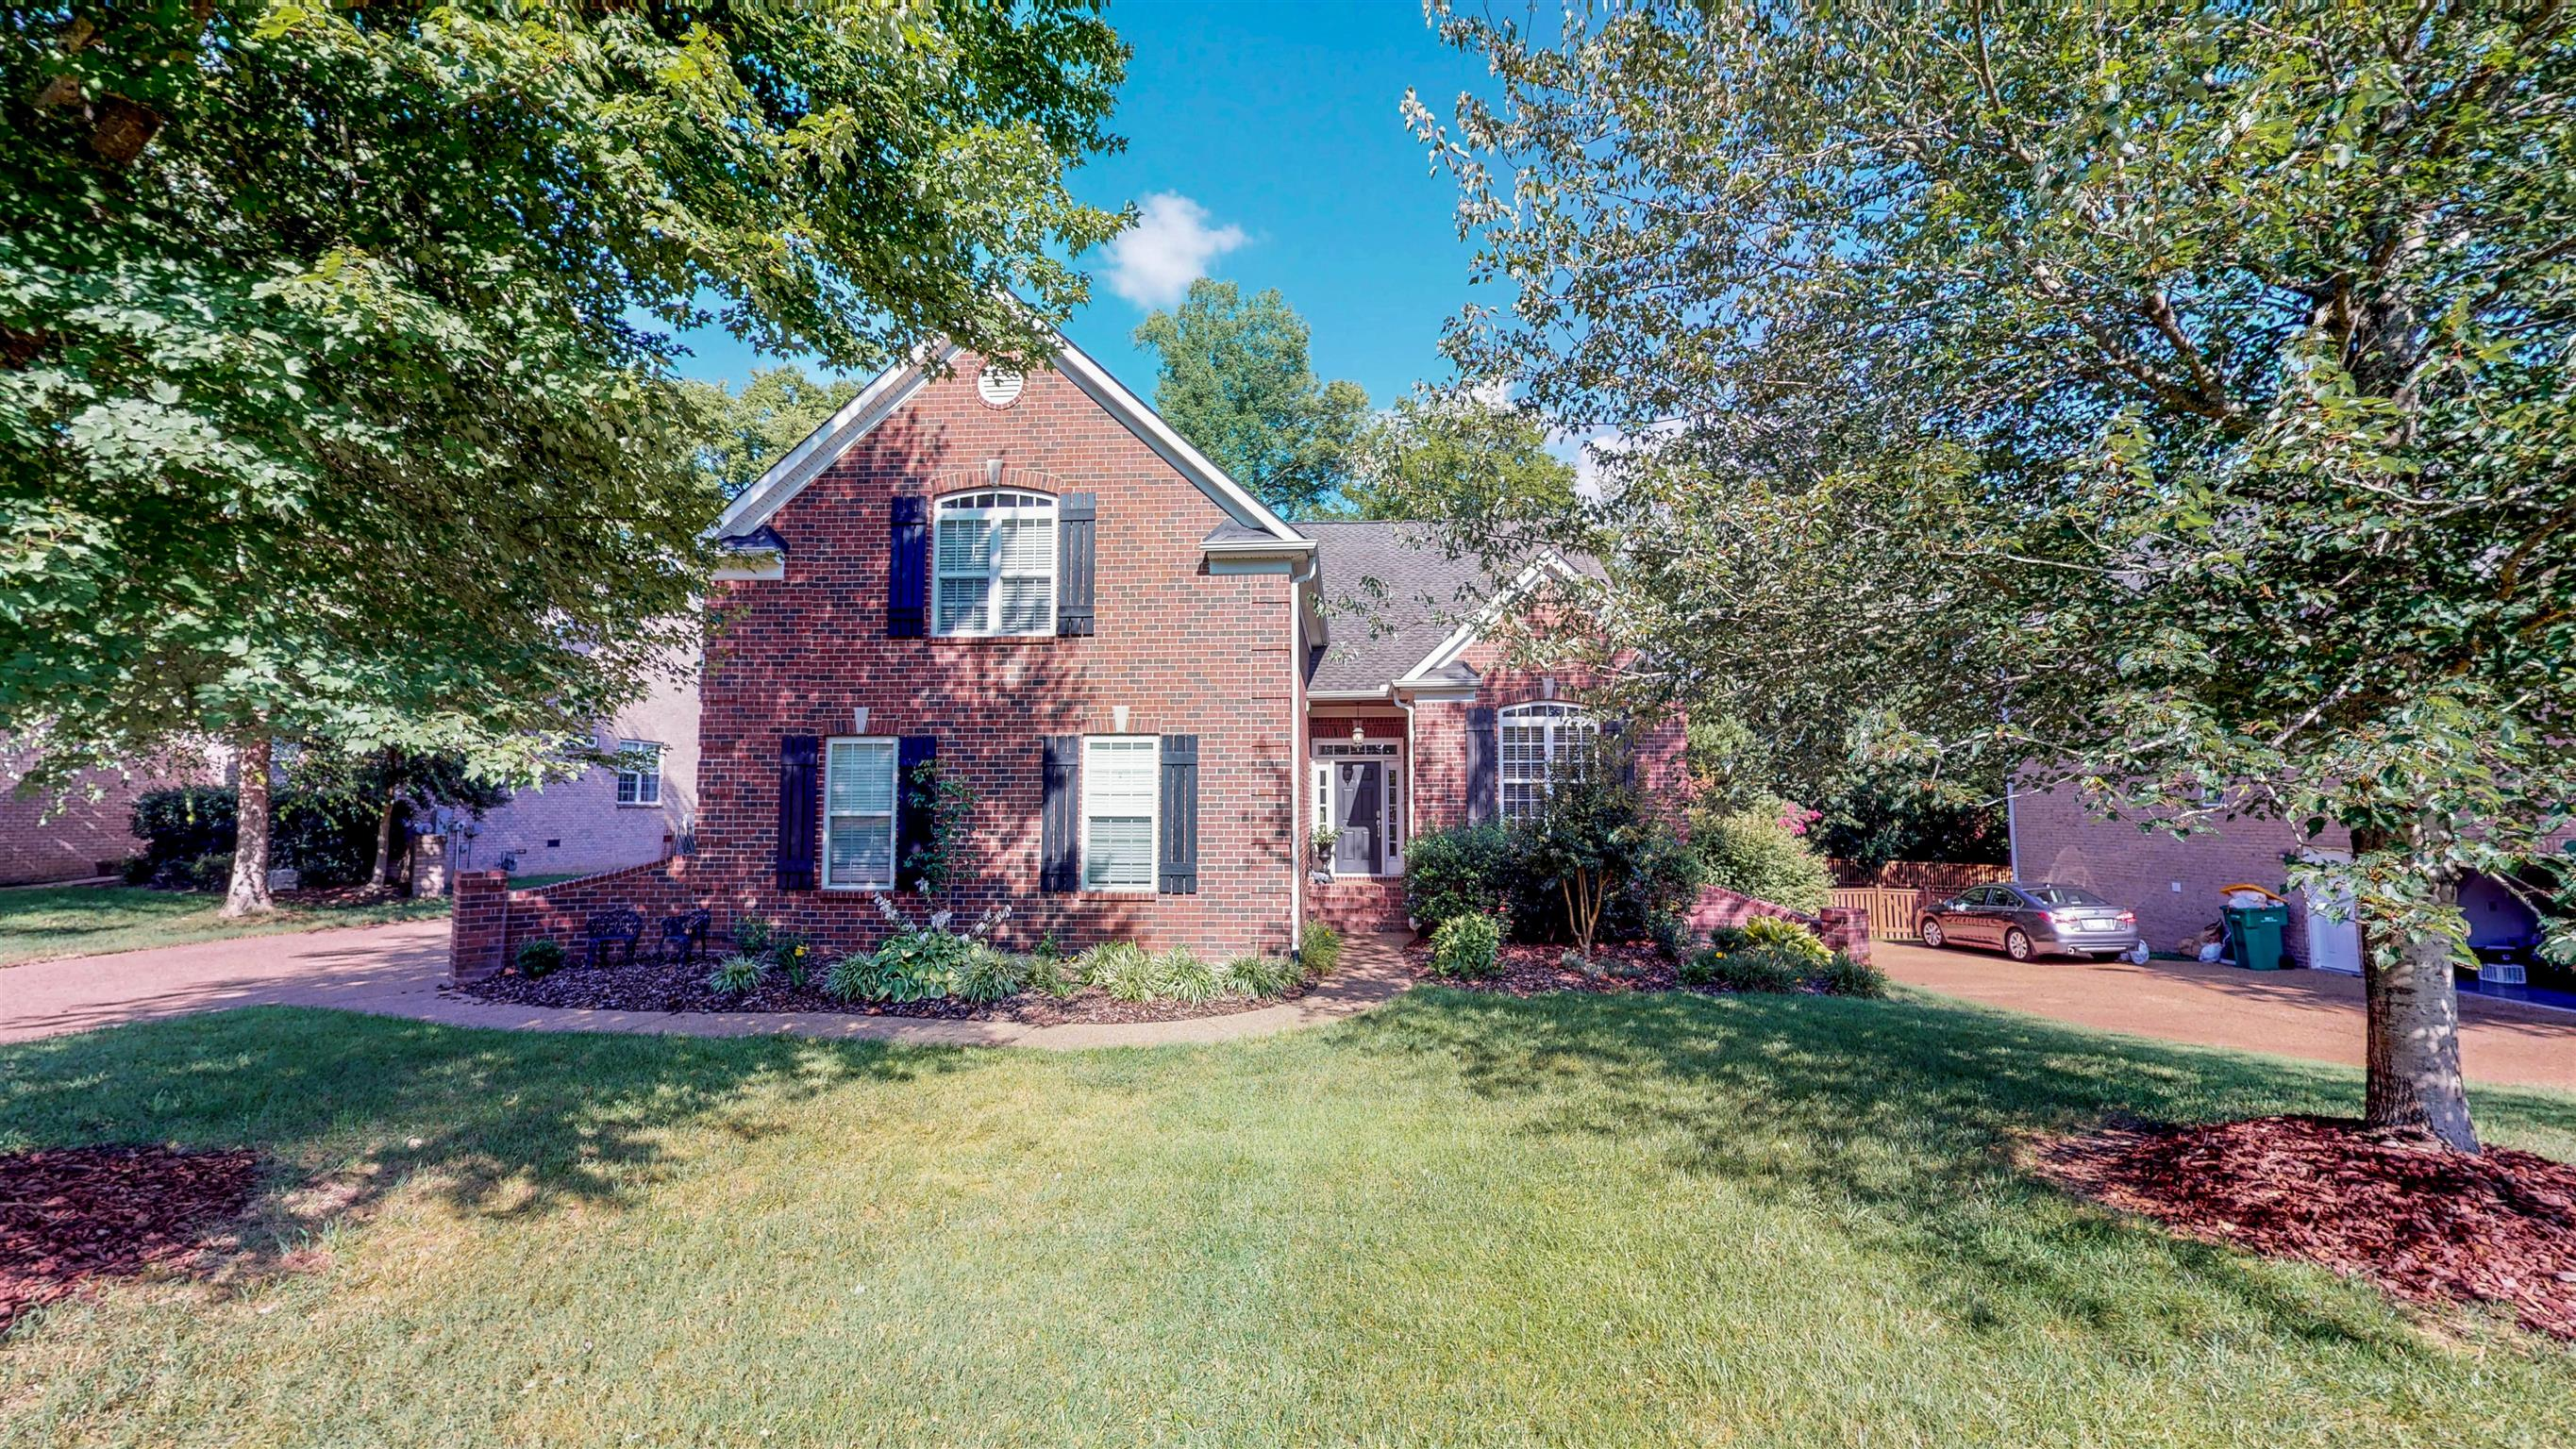 1168 McCoury Ln, Spring Hill, TN 37174 - Spring Hill, TN real estate listing